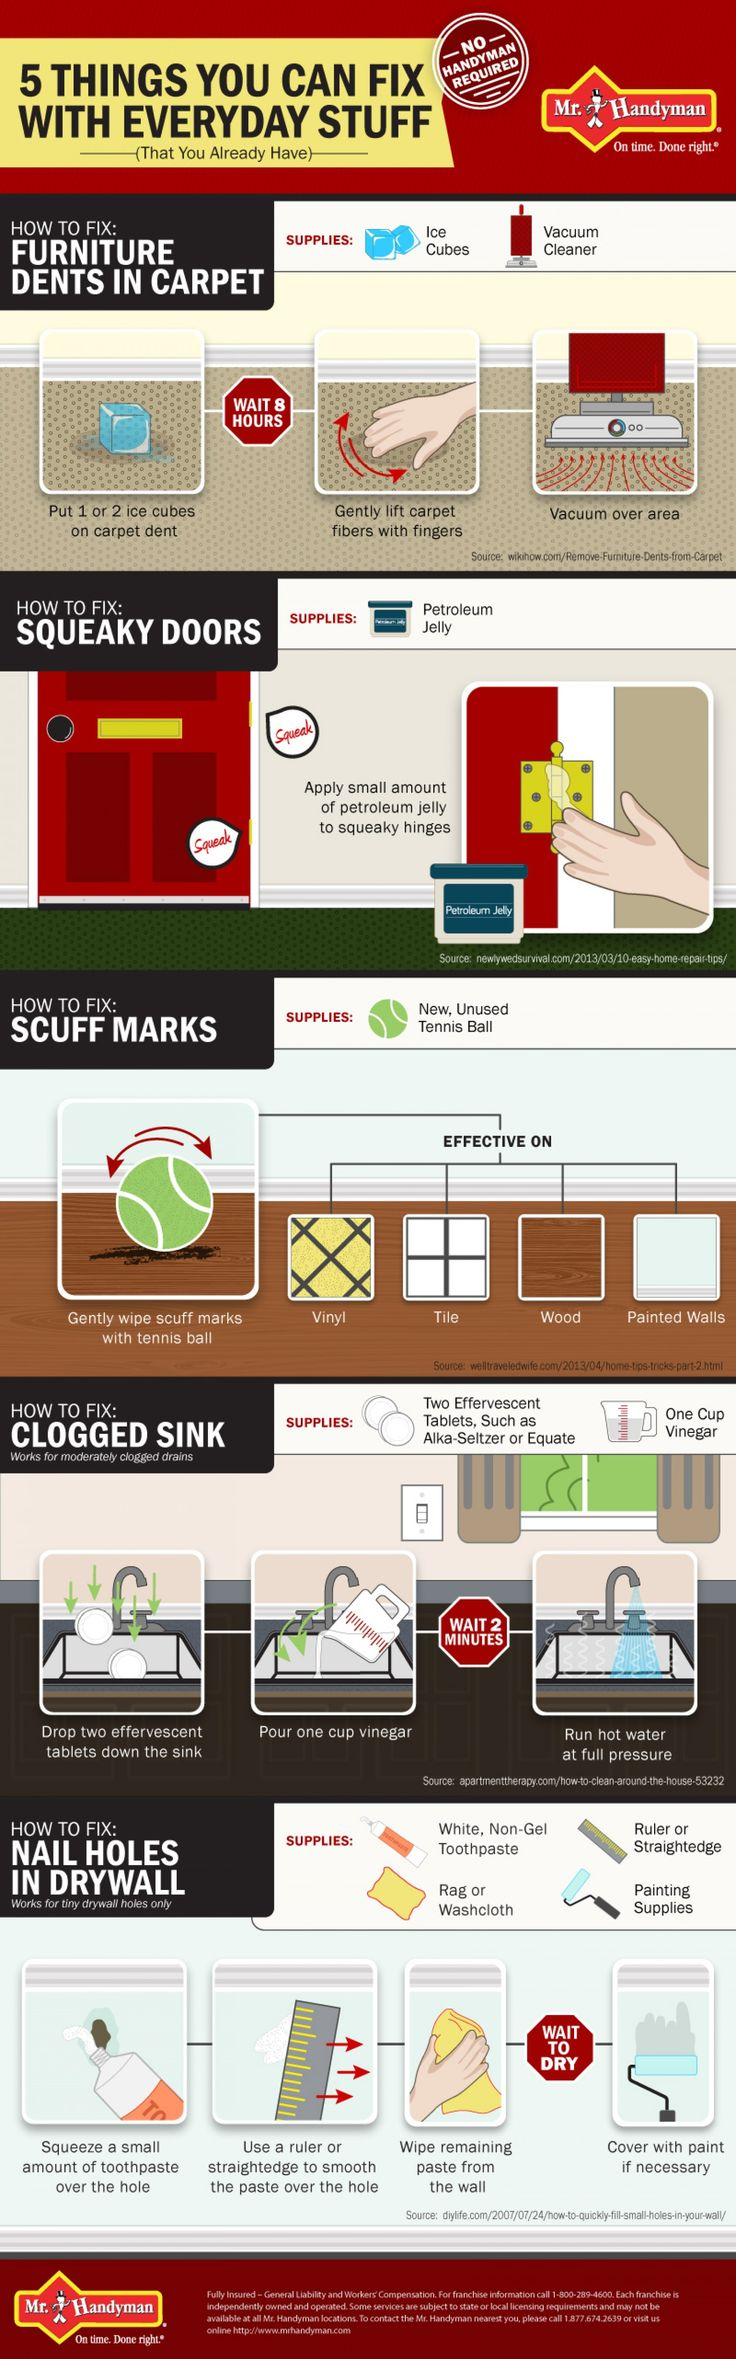 DIY Home Tips: 5 Things You Can Fix Without a Handyman